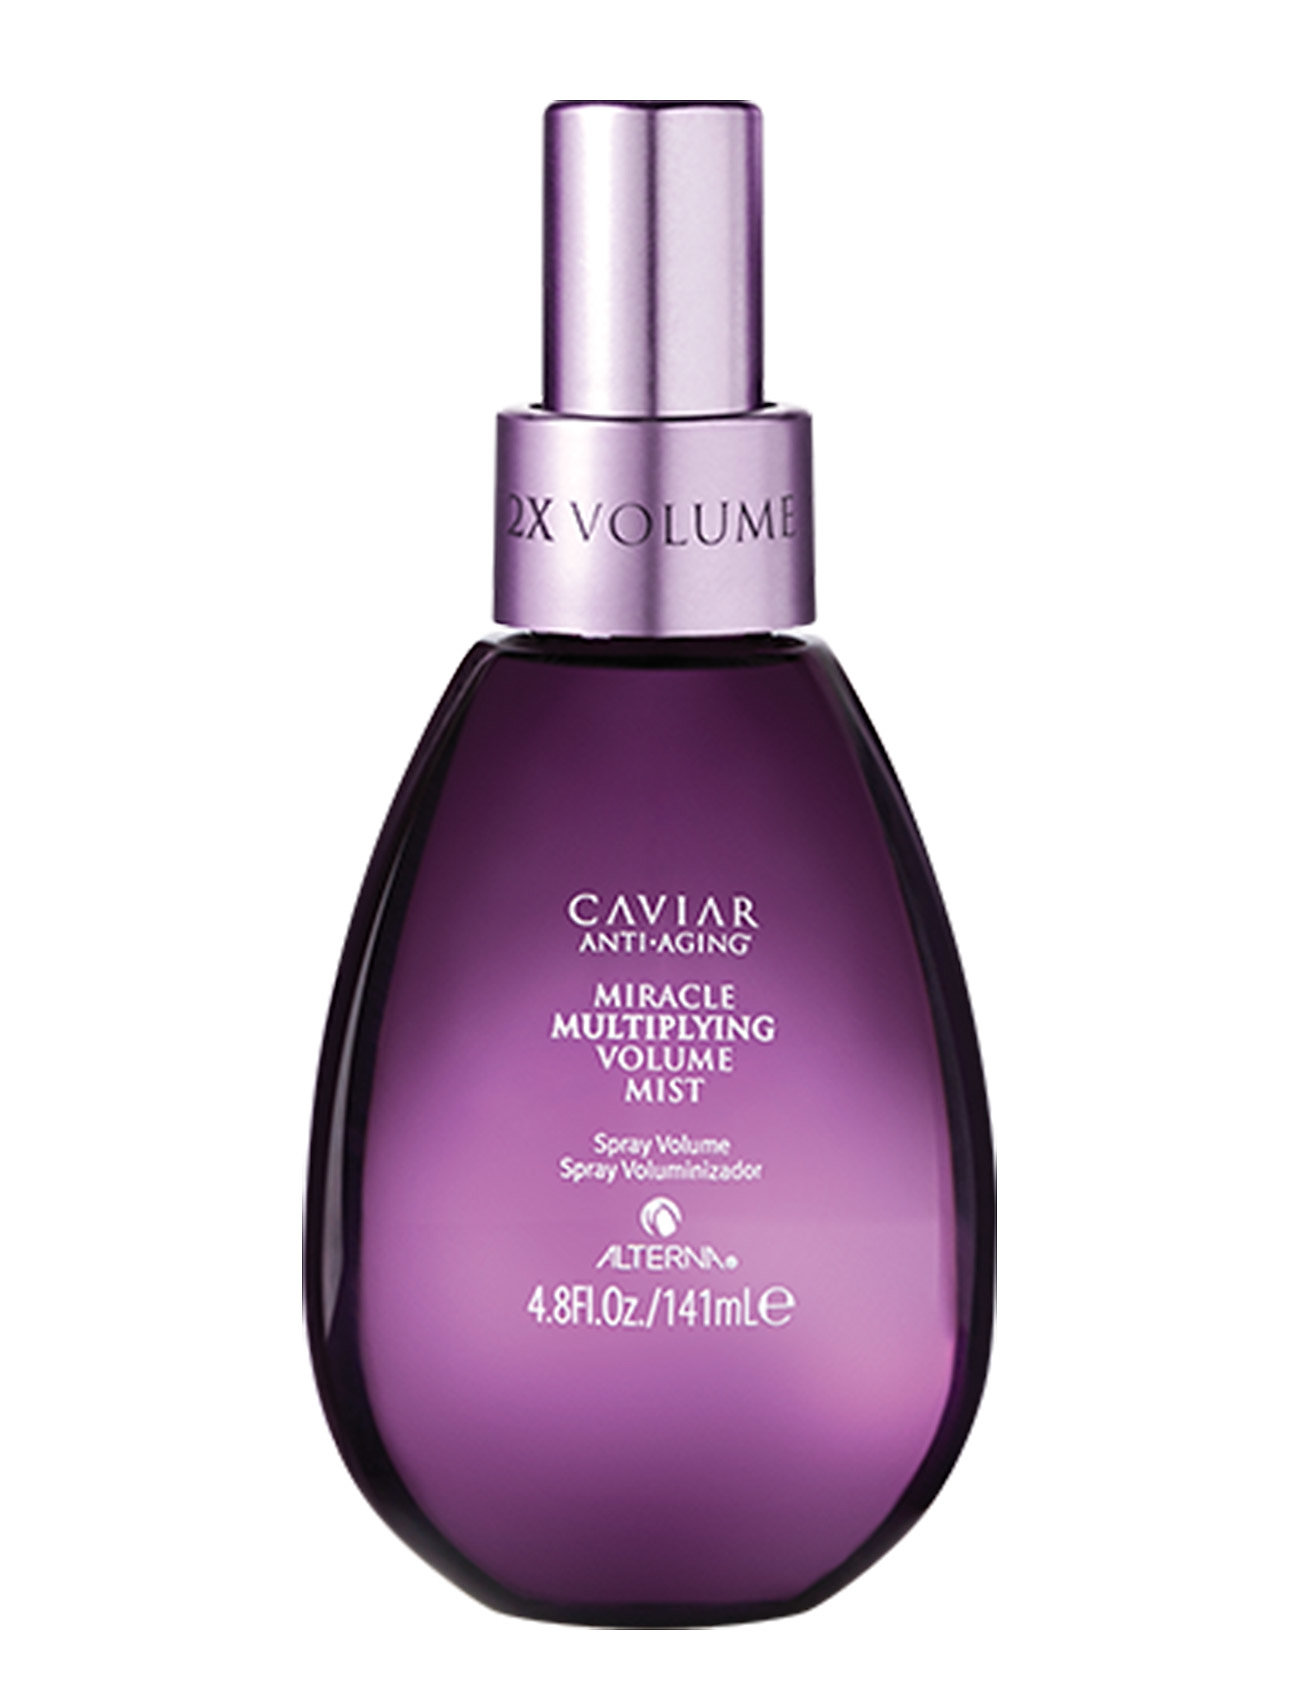 Alterna Caviar Miracle Multiplying Volume Mist 458177058